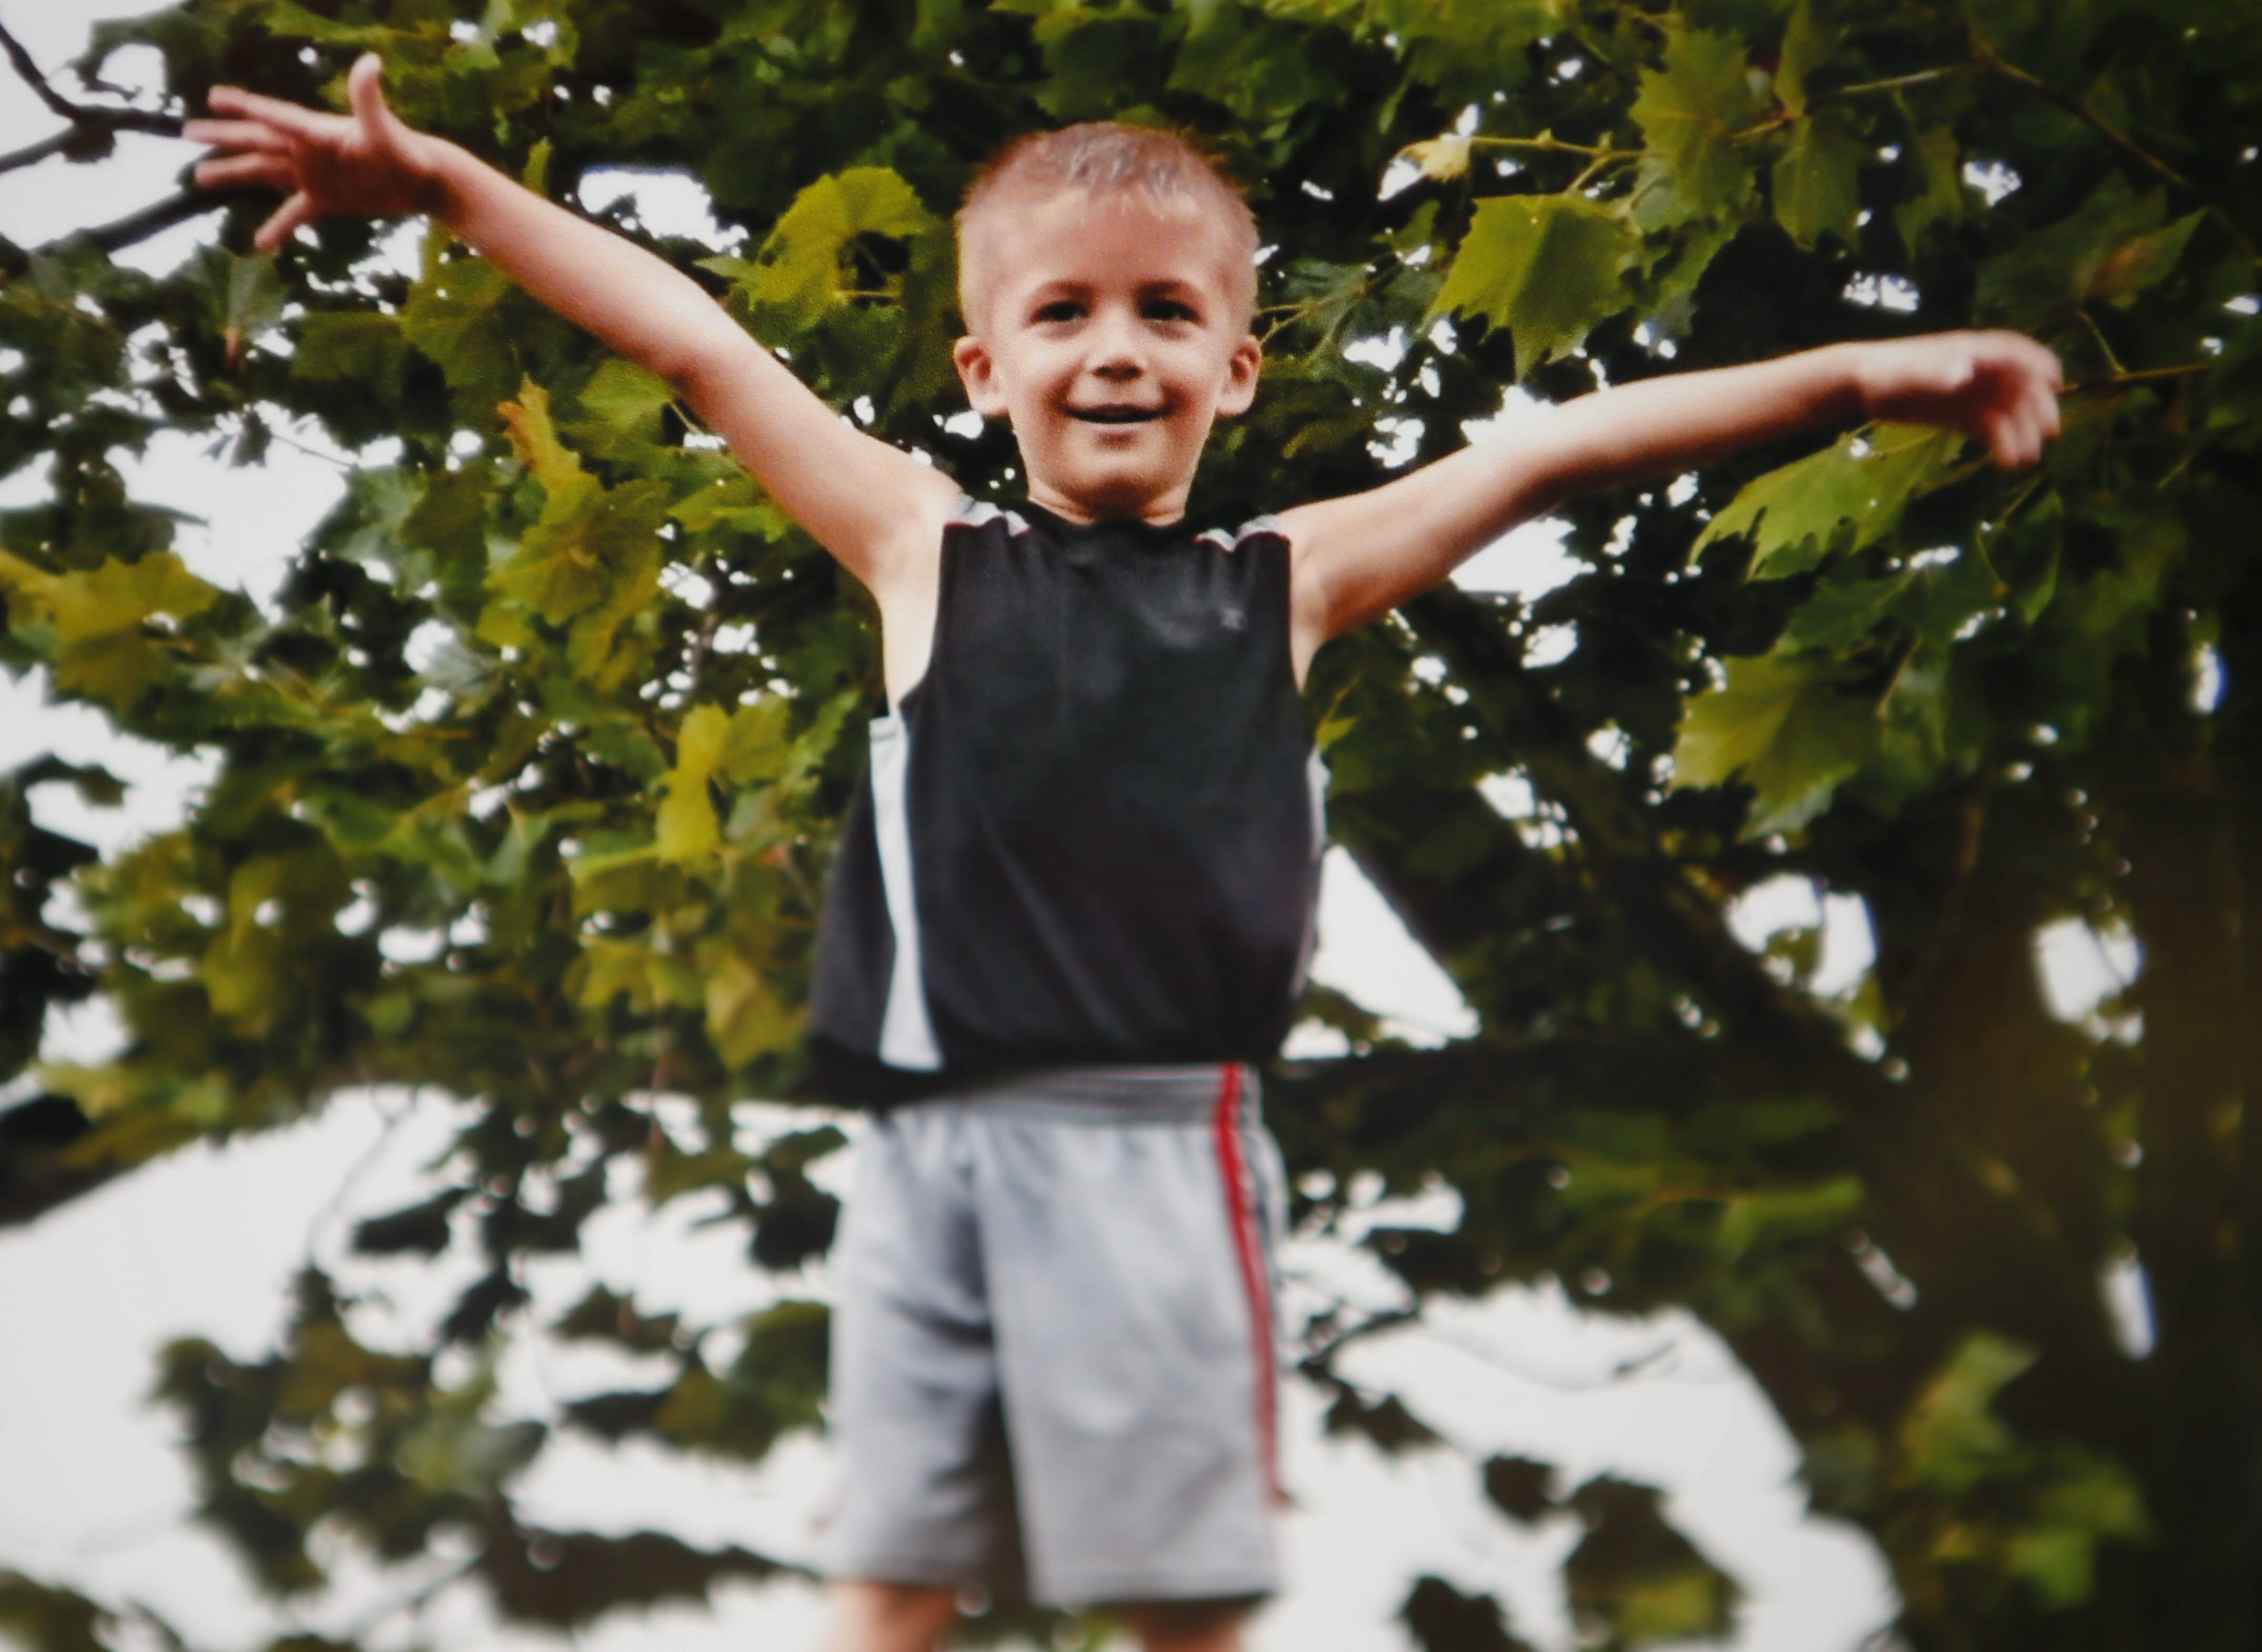 Family members and neighbors had spotted bruises and other signs of abuse on 5-year-old Eain Brooks.